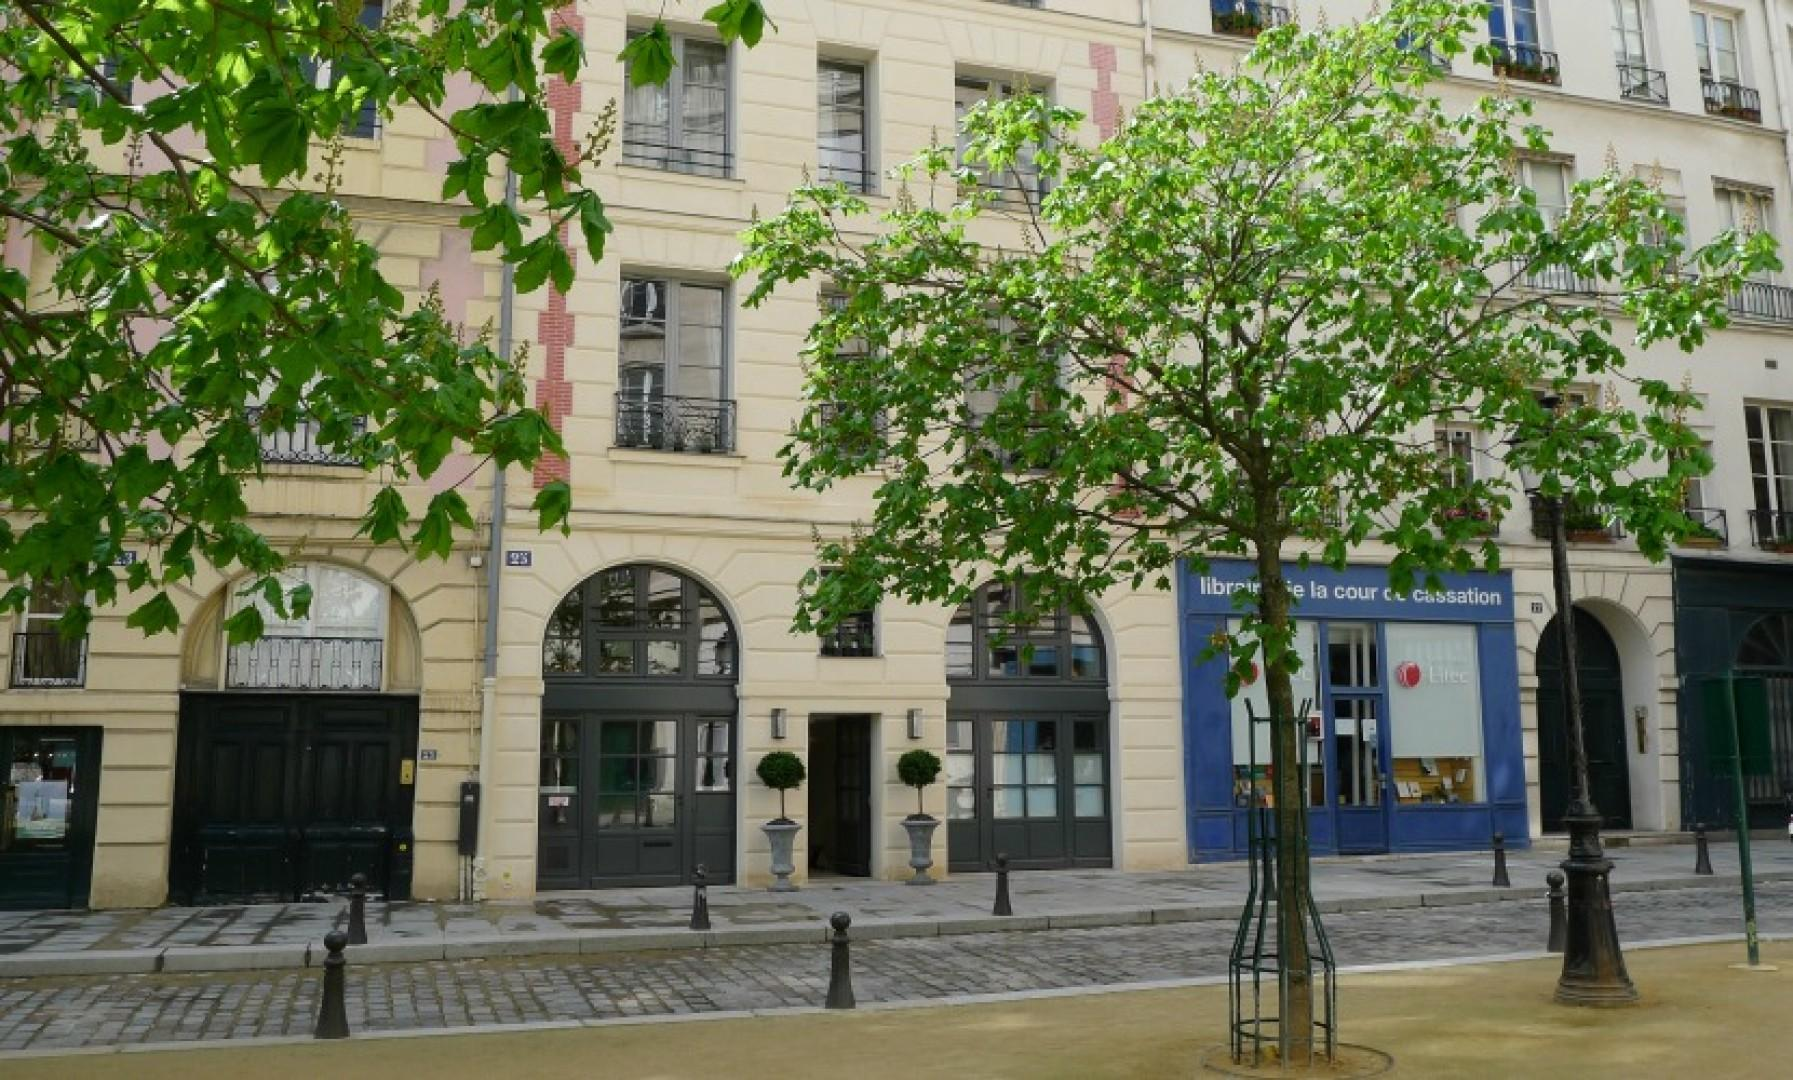 Entrance to our Place Dauphine apartment building